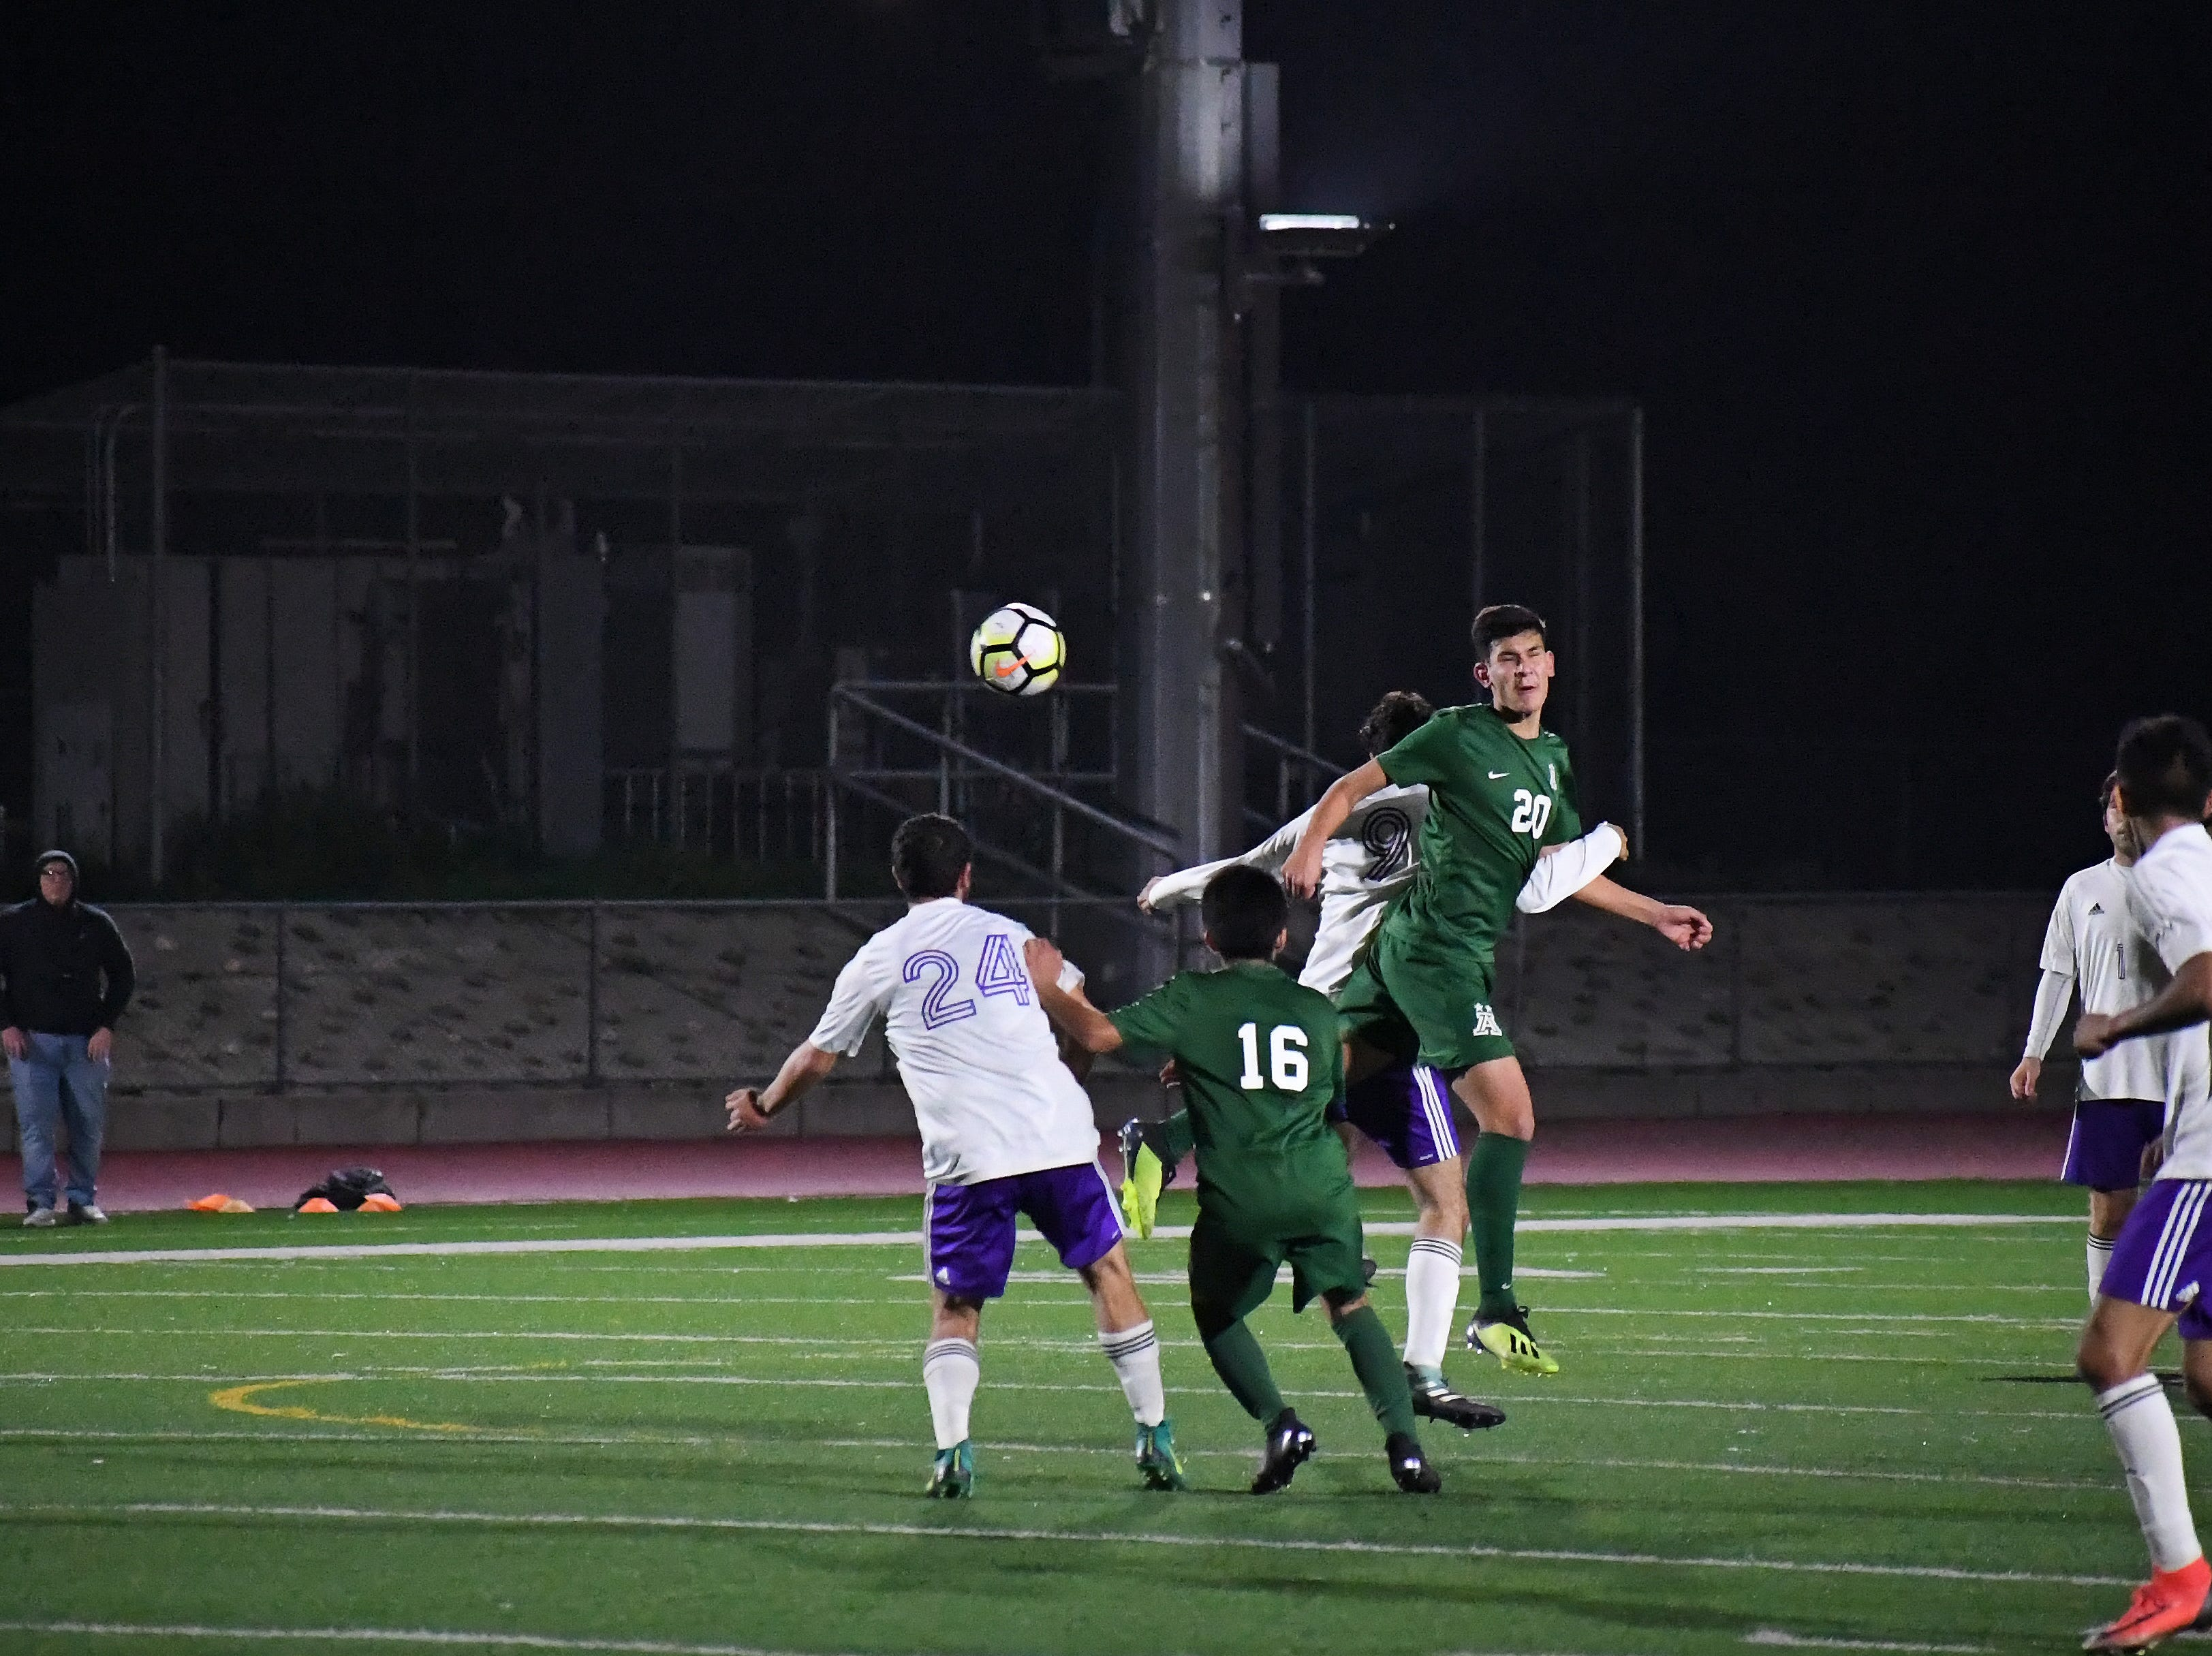 Alisal midfielder Abraham Montaño (20) heads the ball in front of forward Orlando Juarez-Hernandez (16).